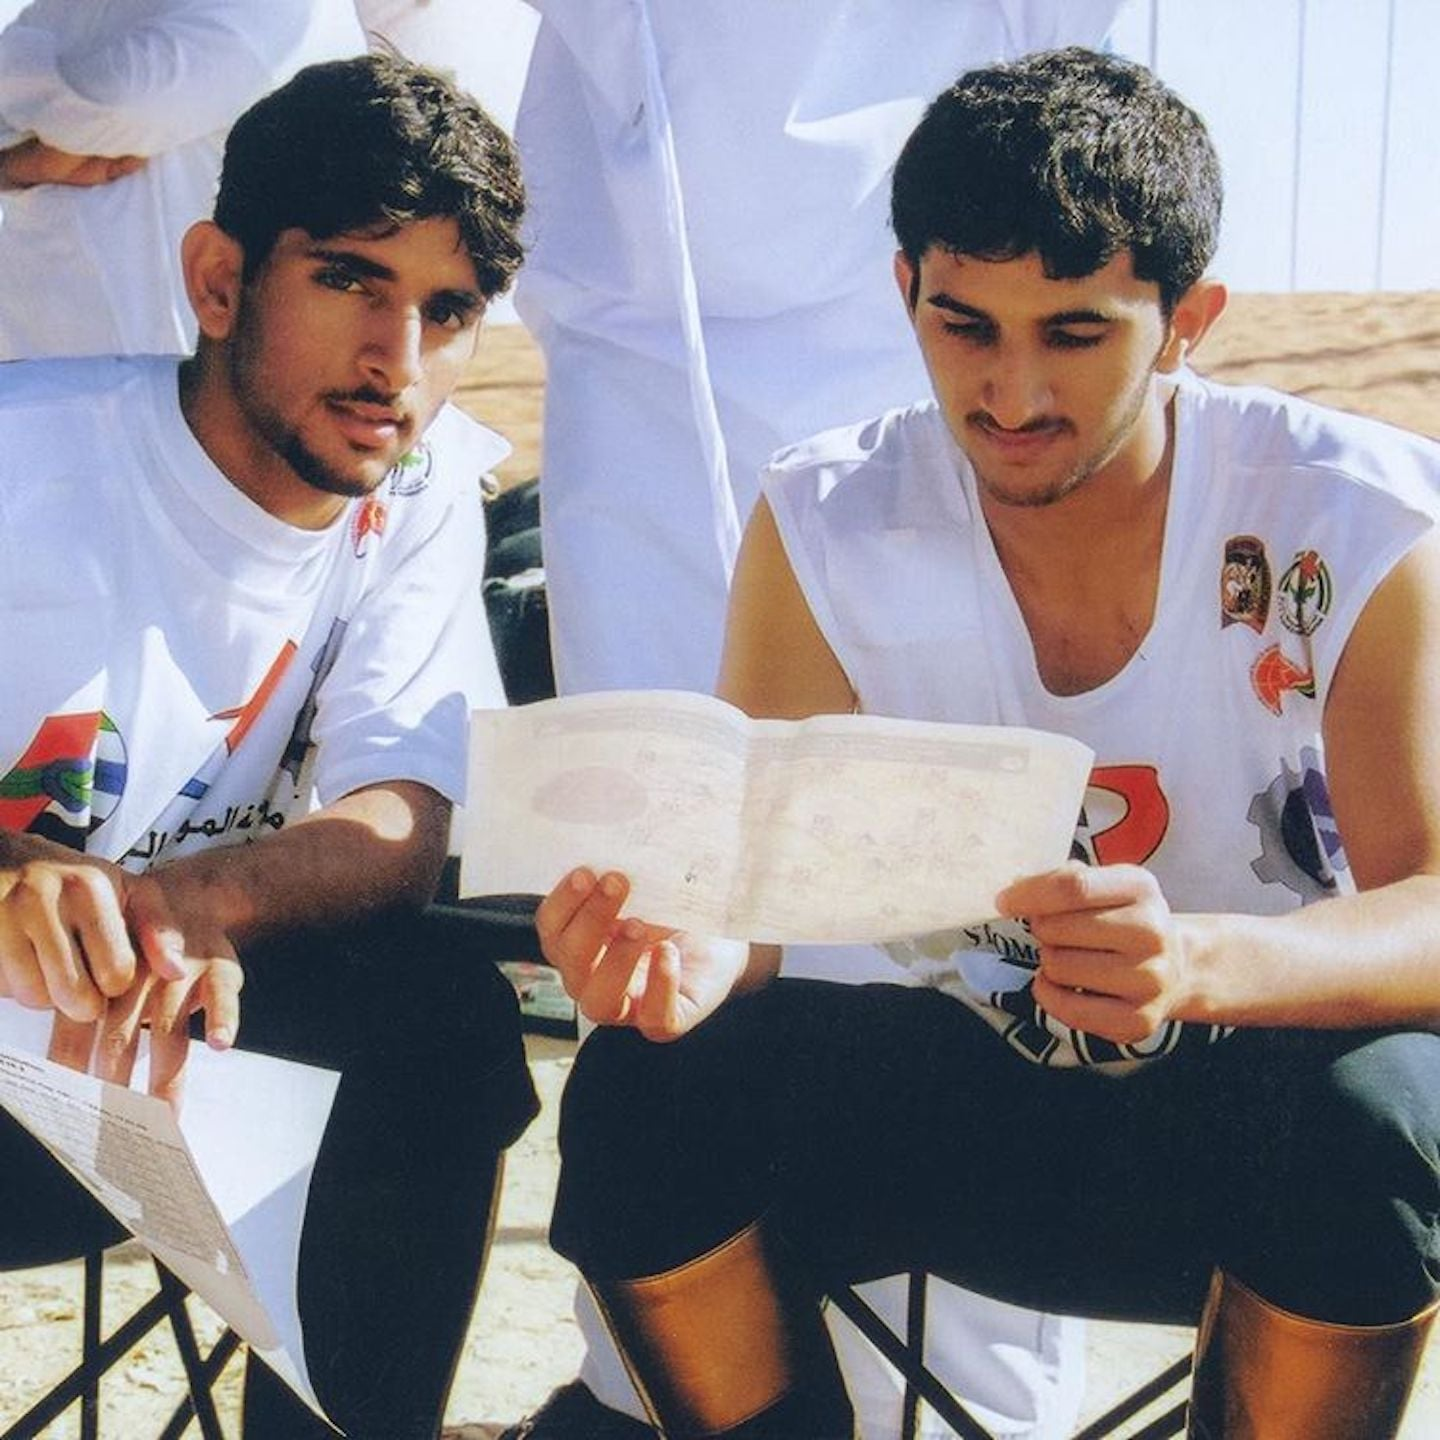 Sheikh Hamdan's Tribute to His Brother | POPSUGAR Middle